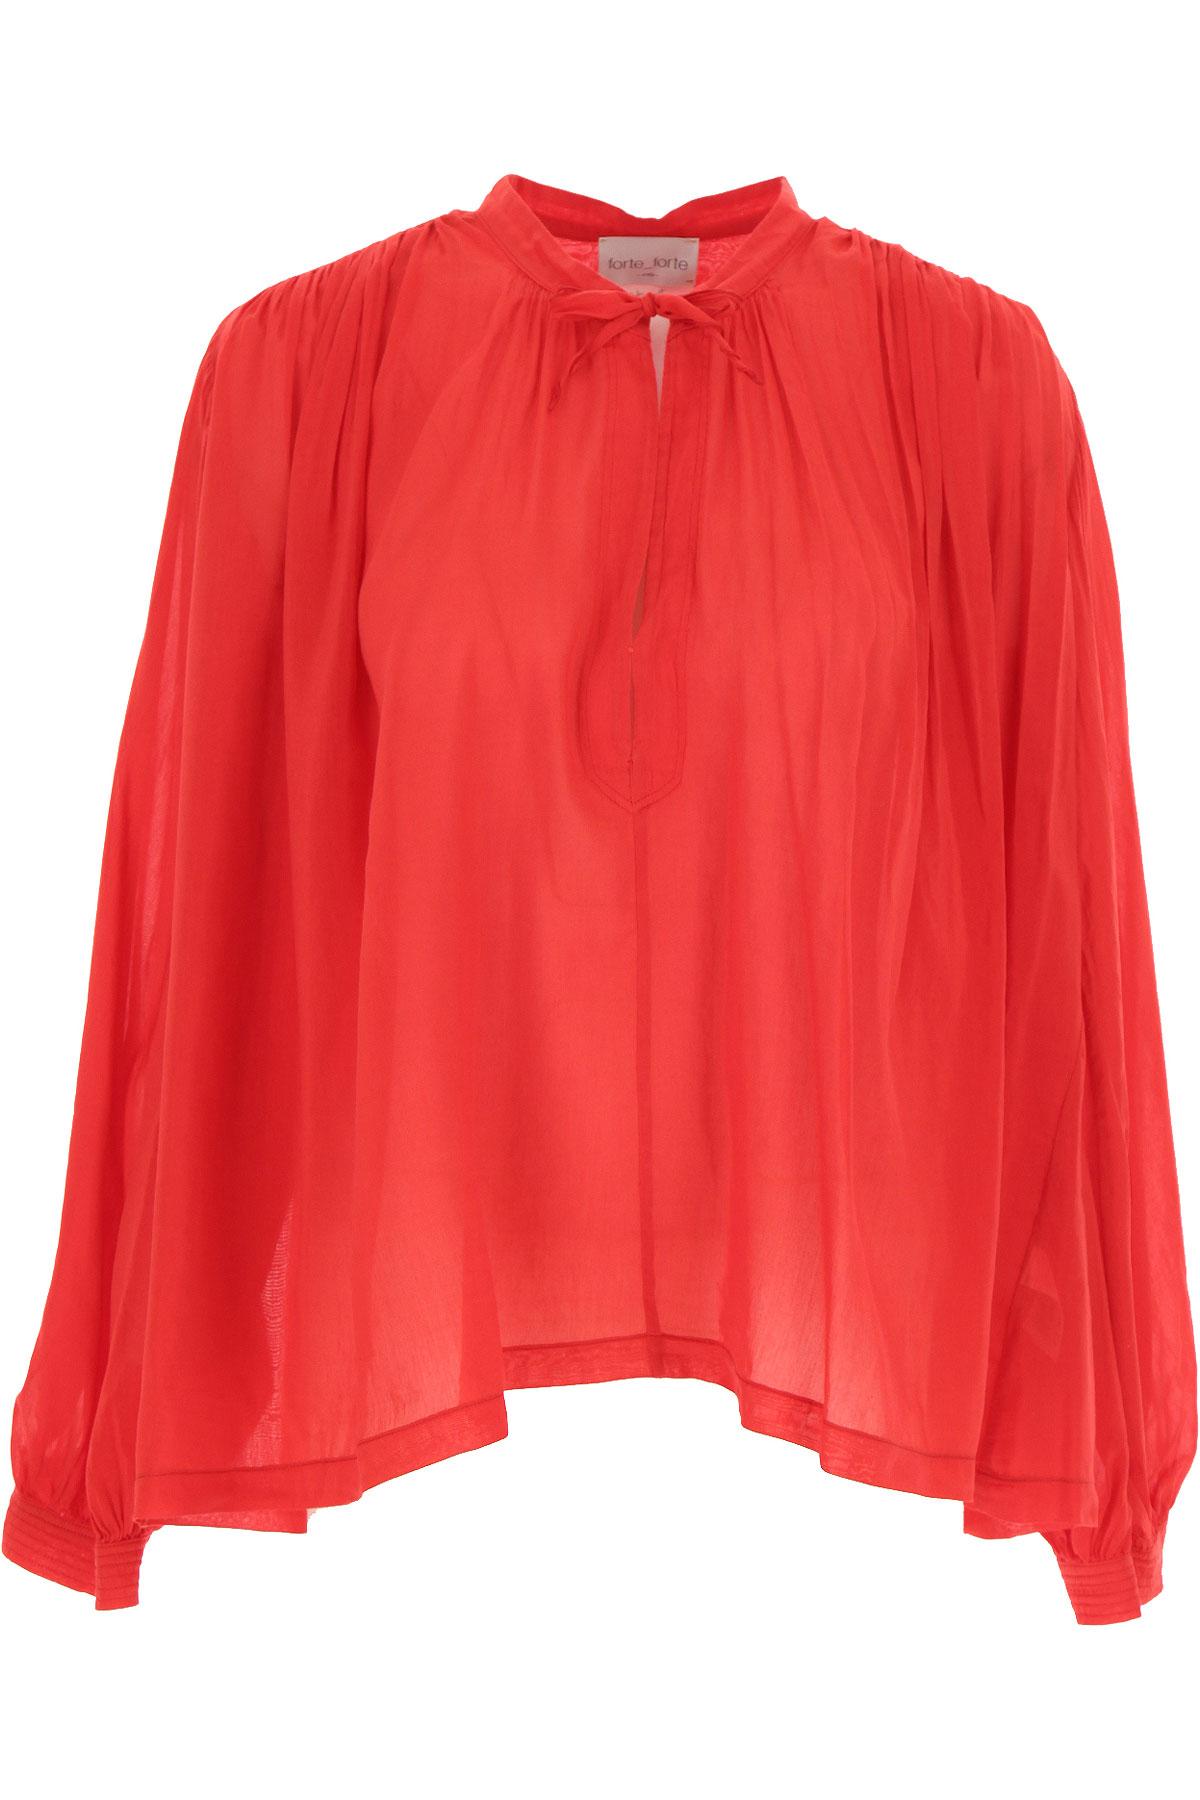 Forte Forte Top for Women On Sale, Fire Red, Cotton, 2019, 0 - XS - IT 38 1 - S - IT 40